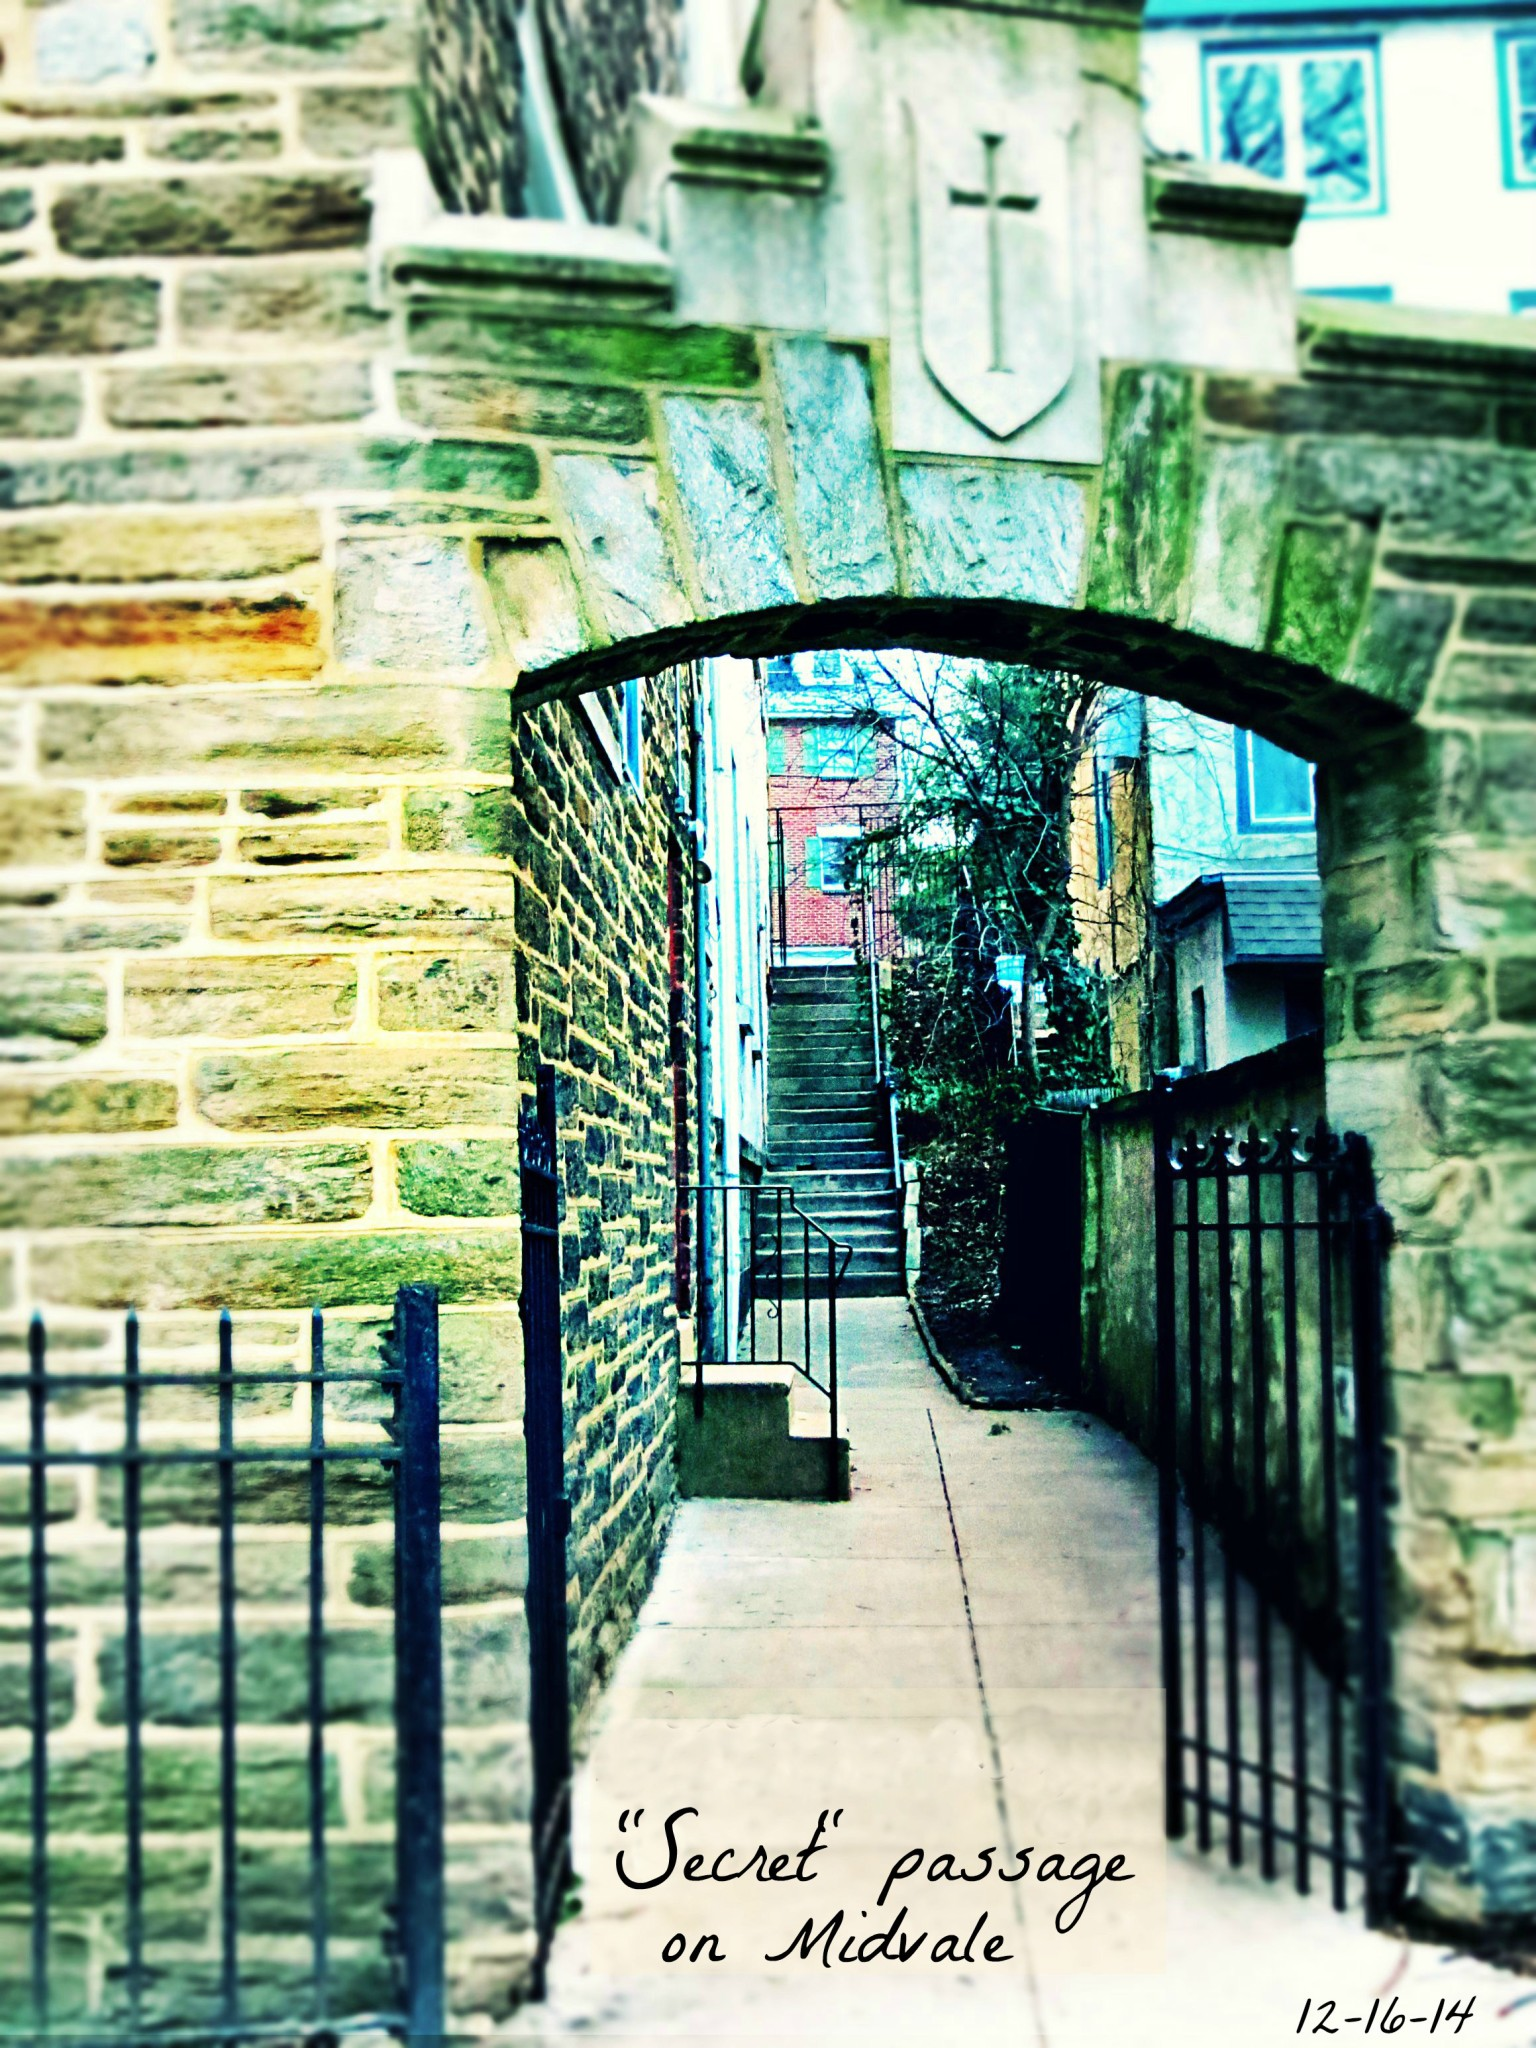 East Falls Local 12-16 baptist church arch